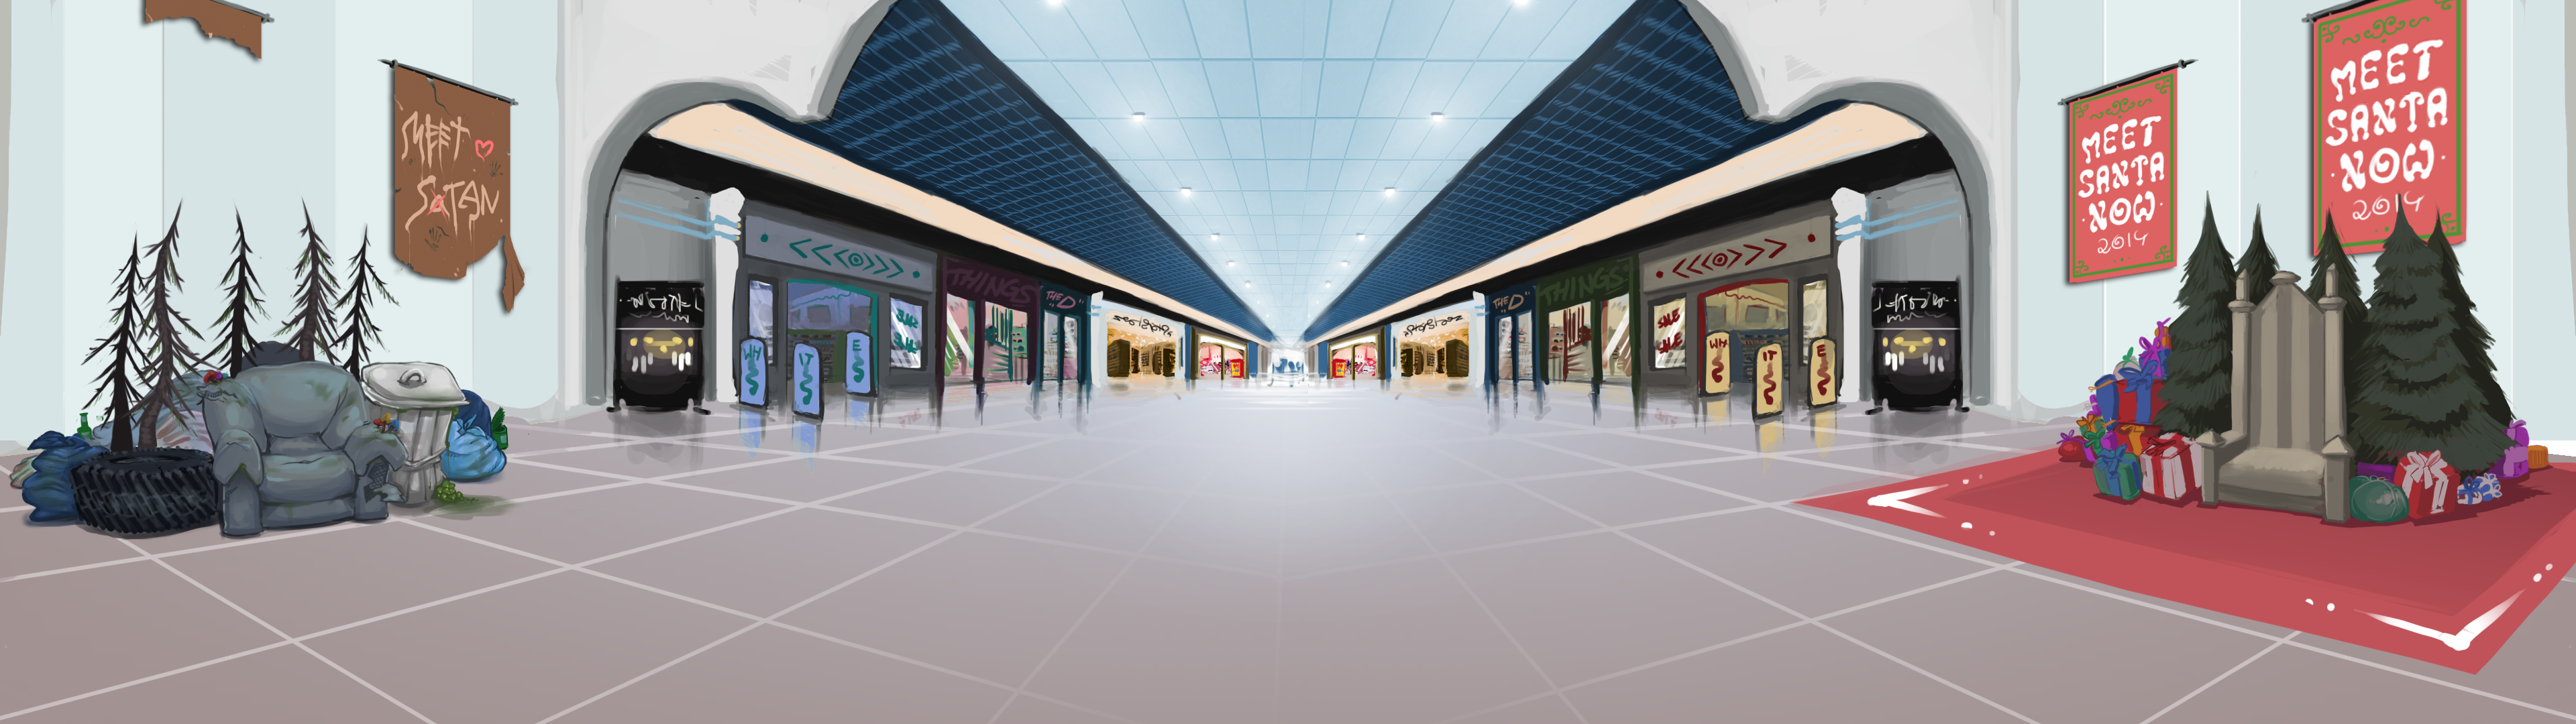 Shopping Mall Background